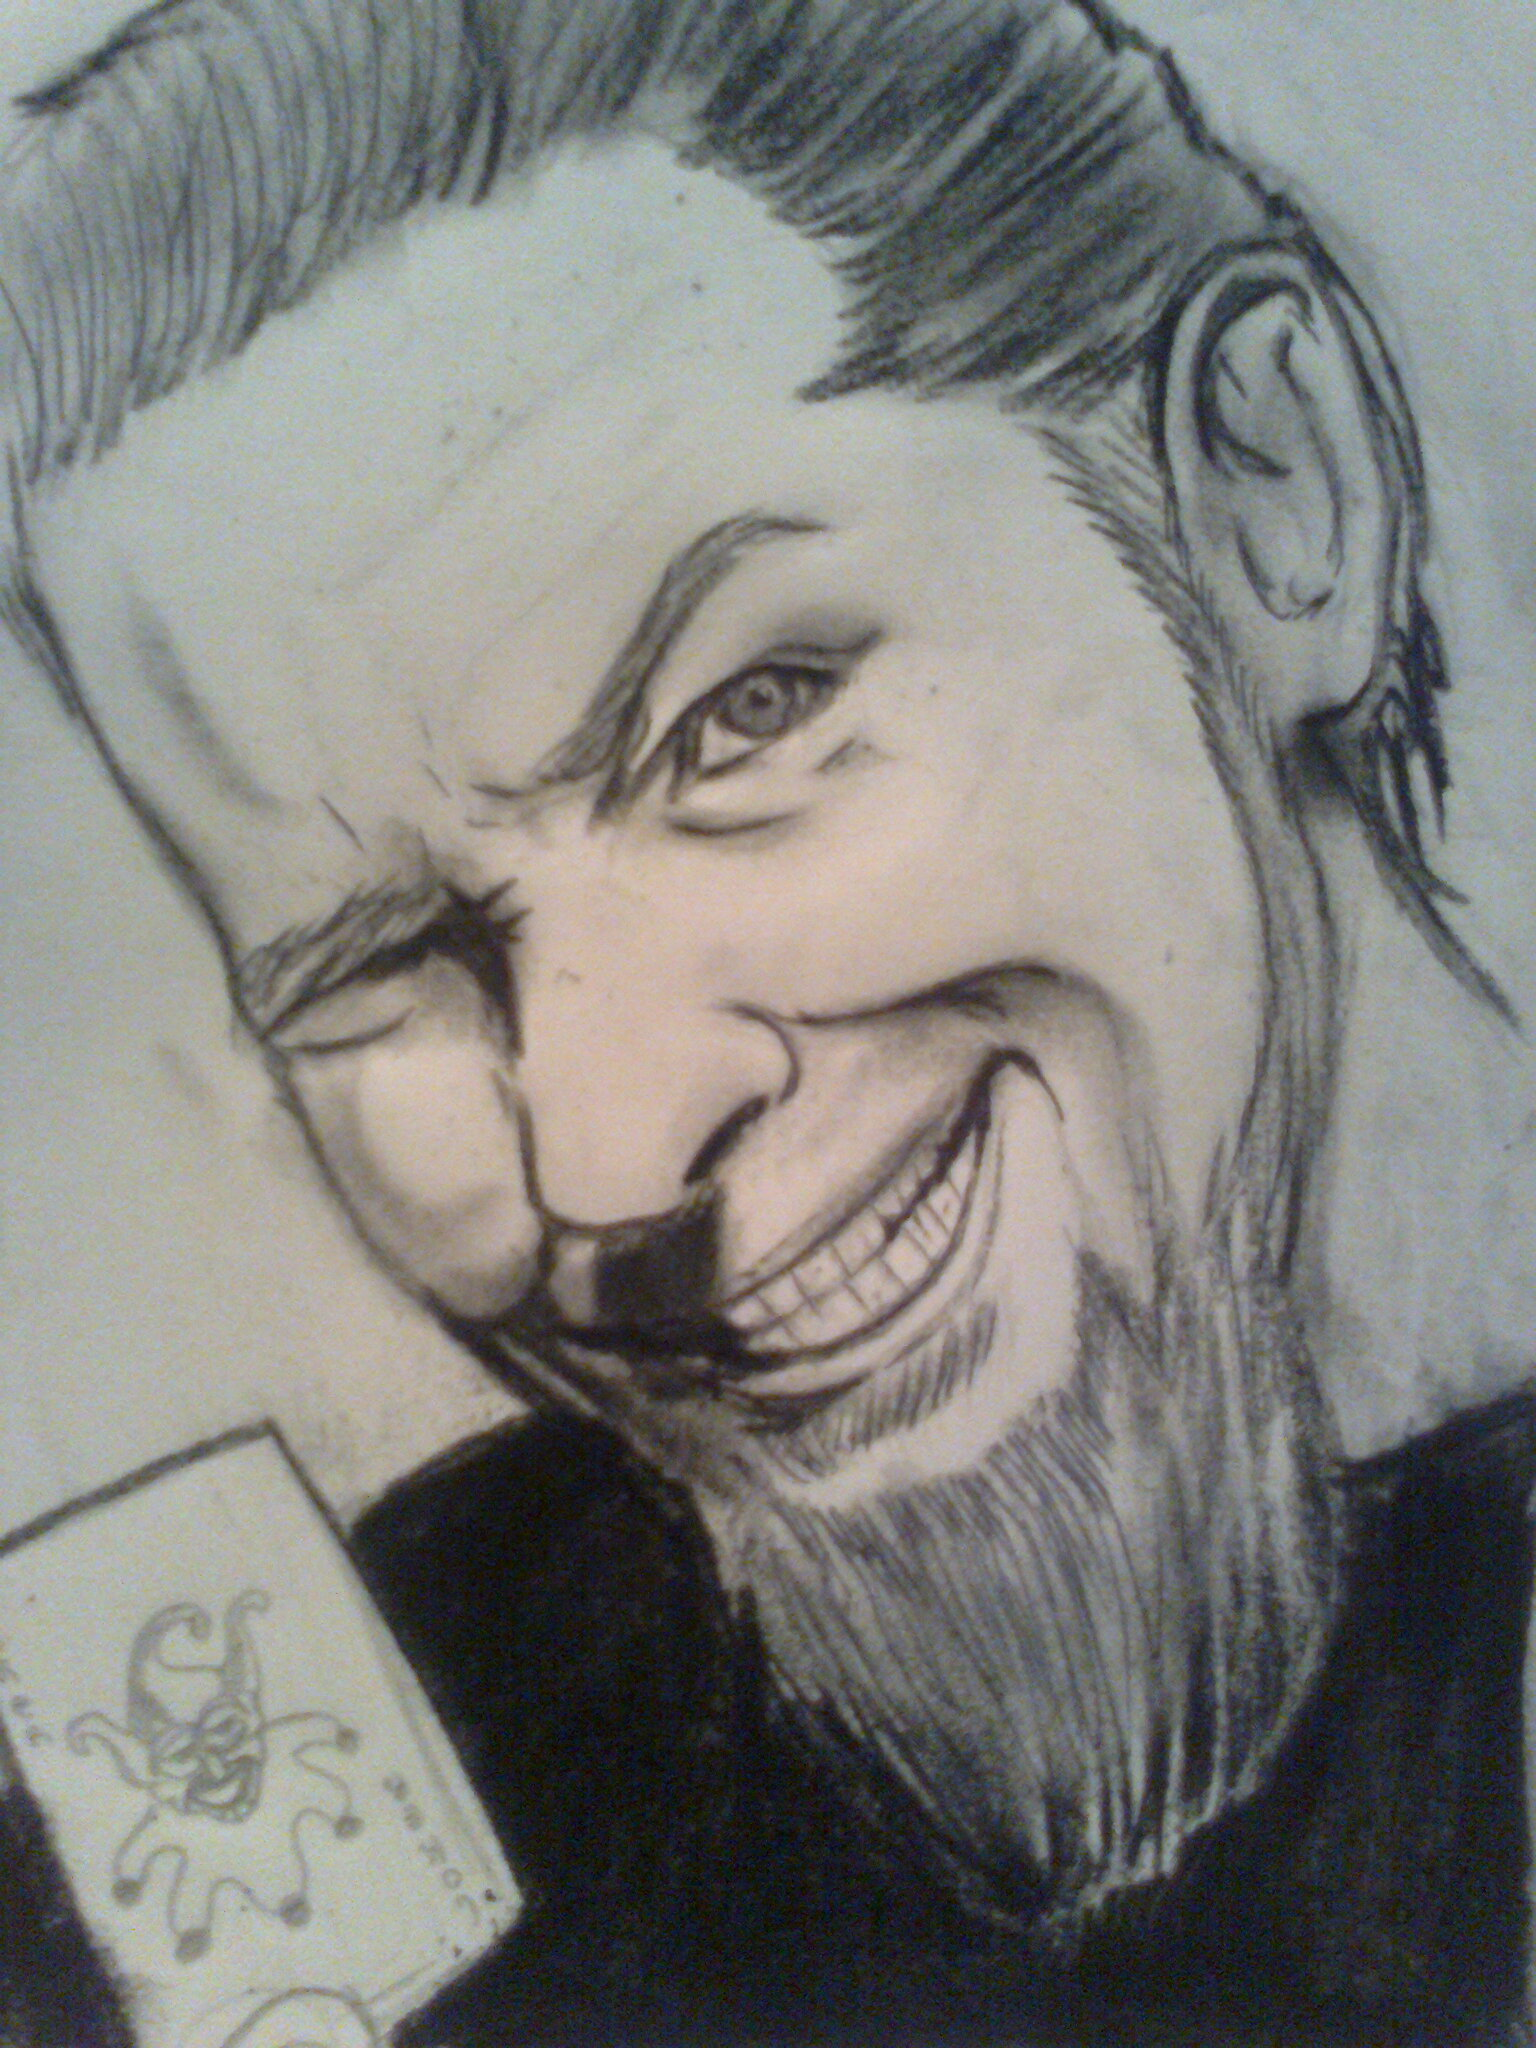 dibujo de james hetfield (metallica)